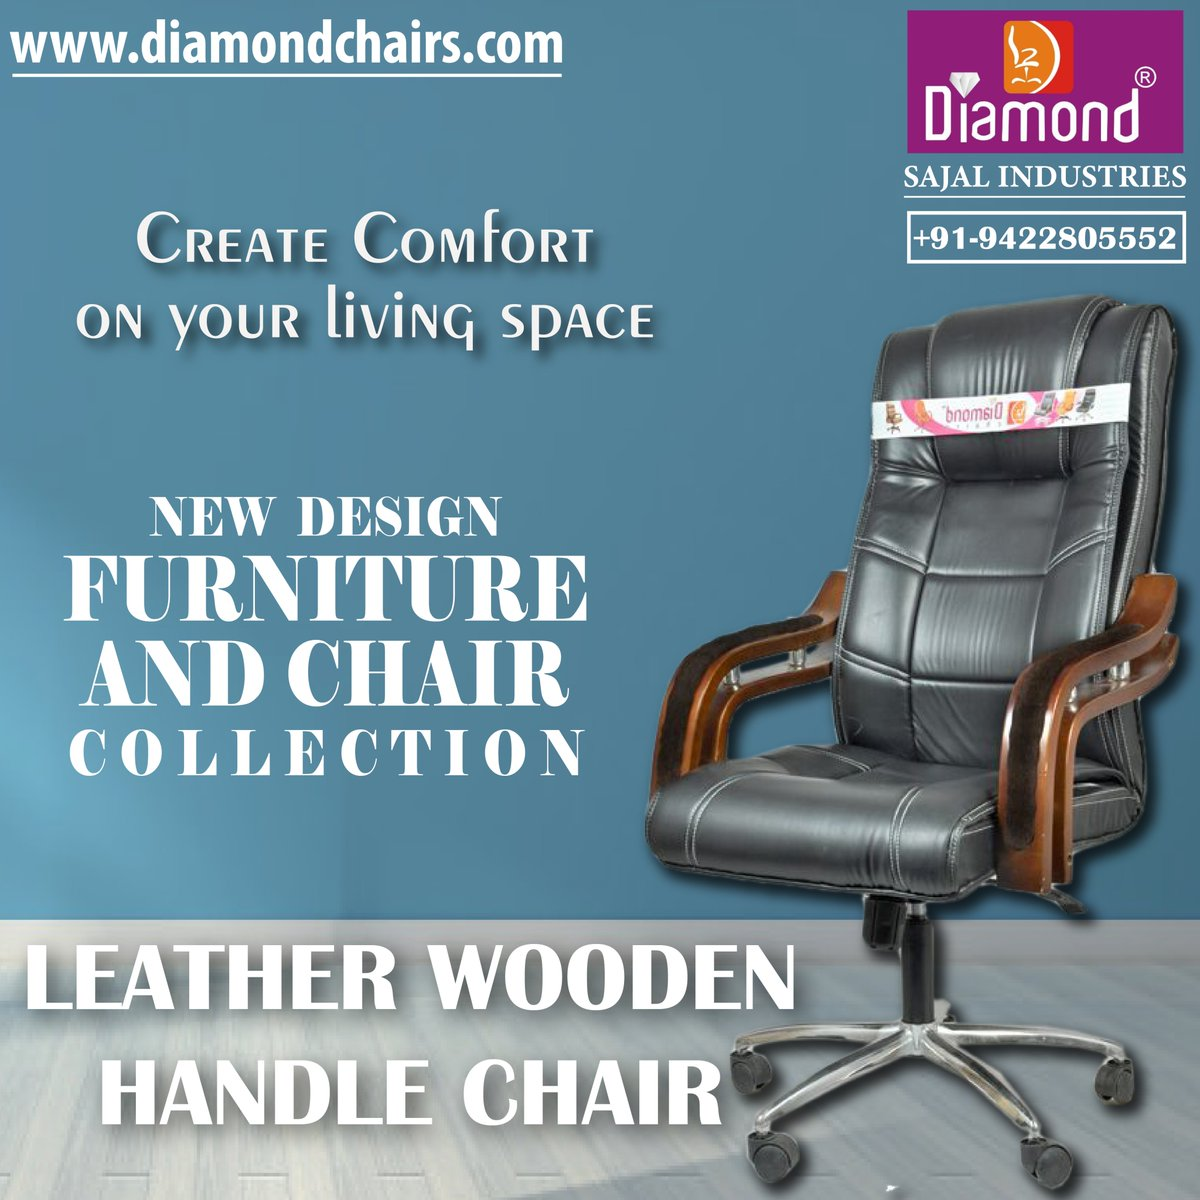 NEW DESIGN FURNITURE AND CHAIRS COLLECTIONS.. CREATE COMFORT ON YOUR LIVING SPACE GO AND VISIT OUR WEBSITE:  https:// bit.ly/2O6clCn     shop now<br>http://pic.twitter.com/uHxE7nNz4j